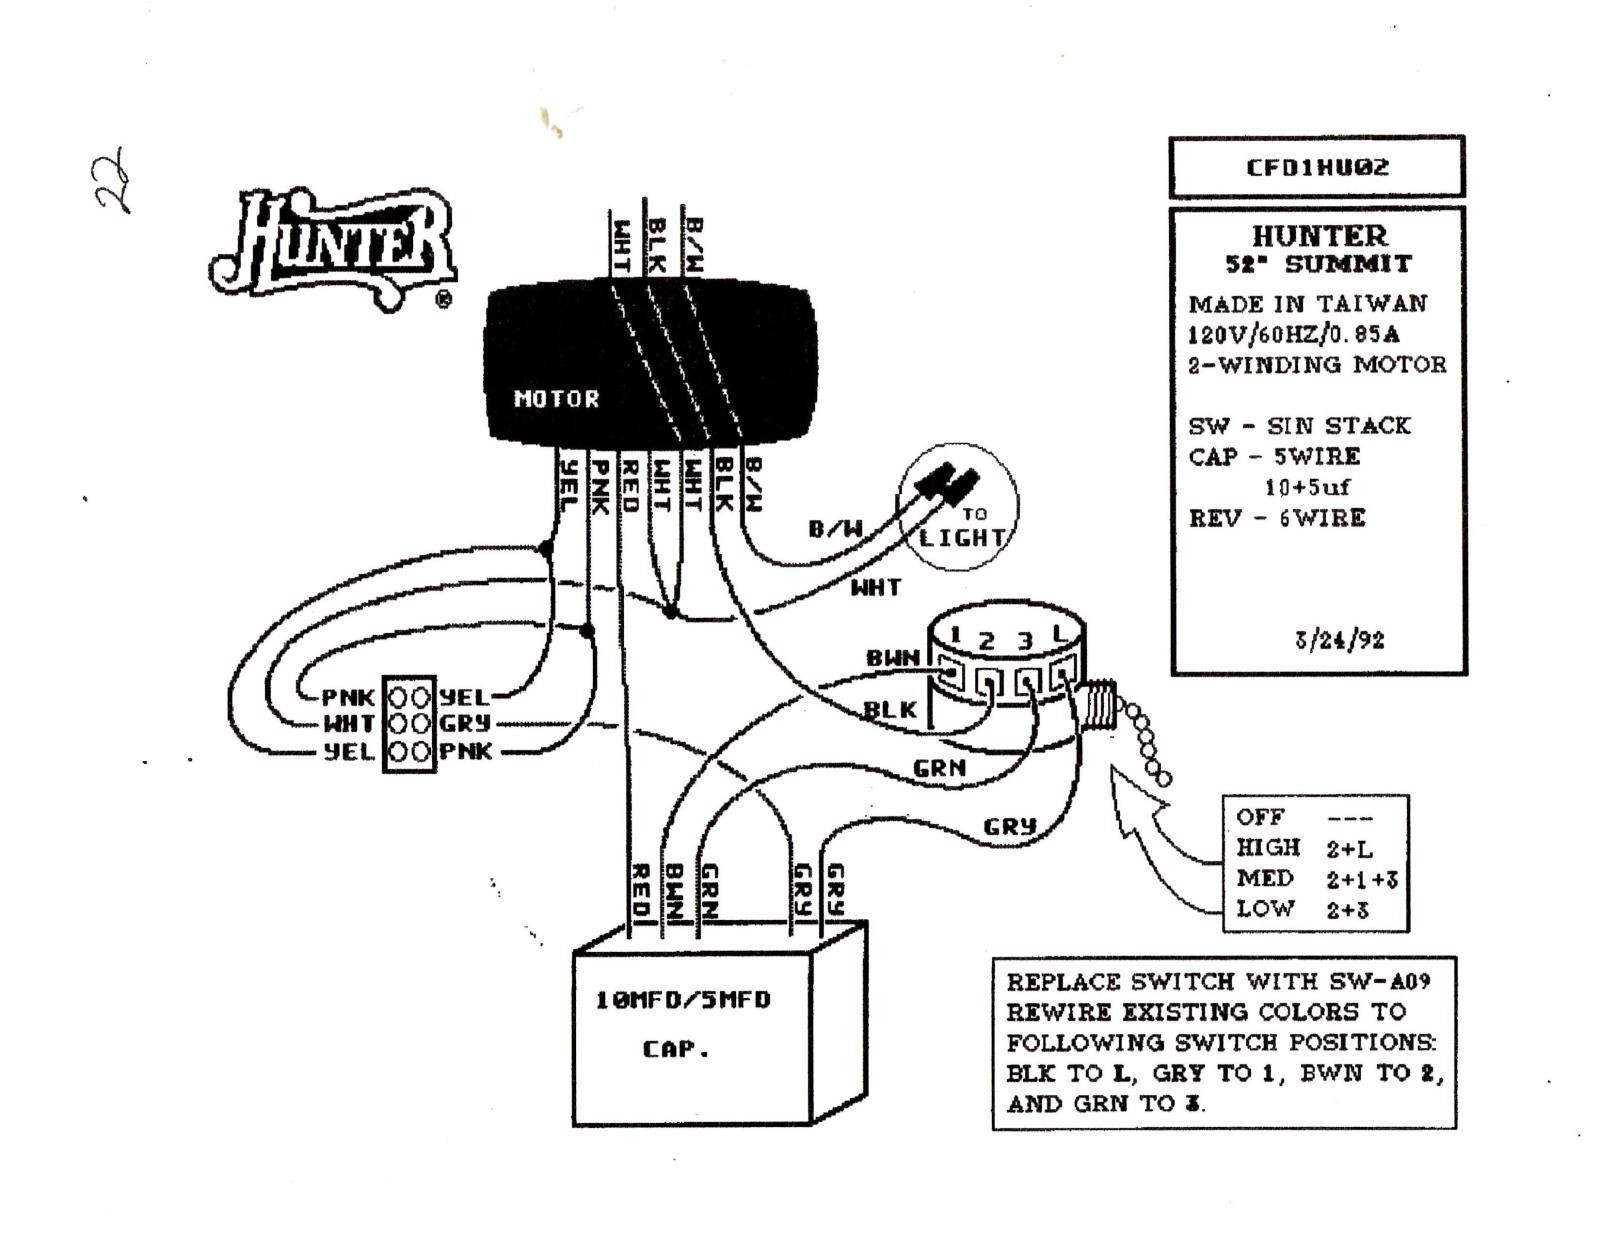 wiring breeze diagram fan harbor switch 00033906 staircase wiring circuit diagram 3 way switch